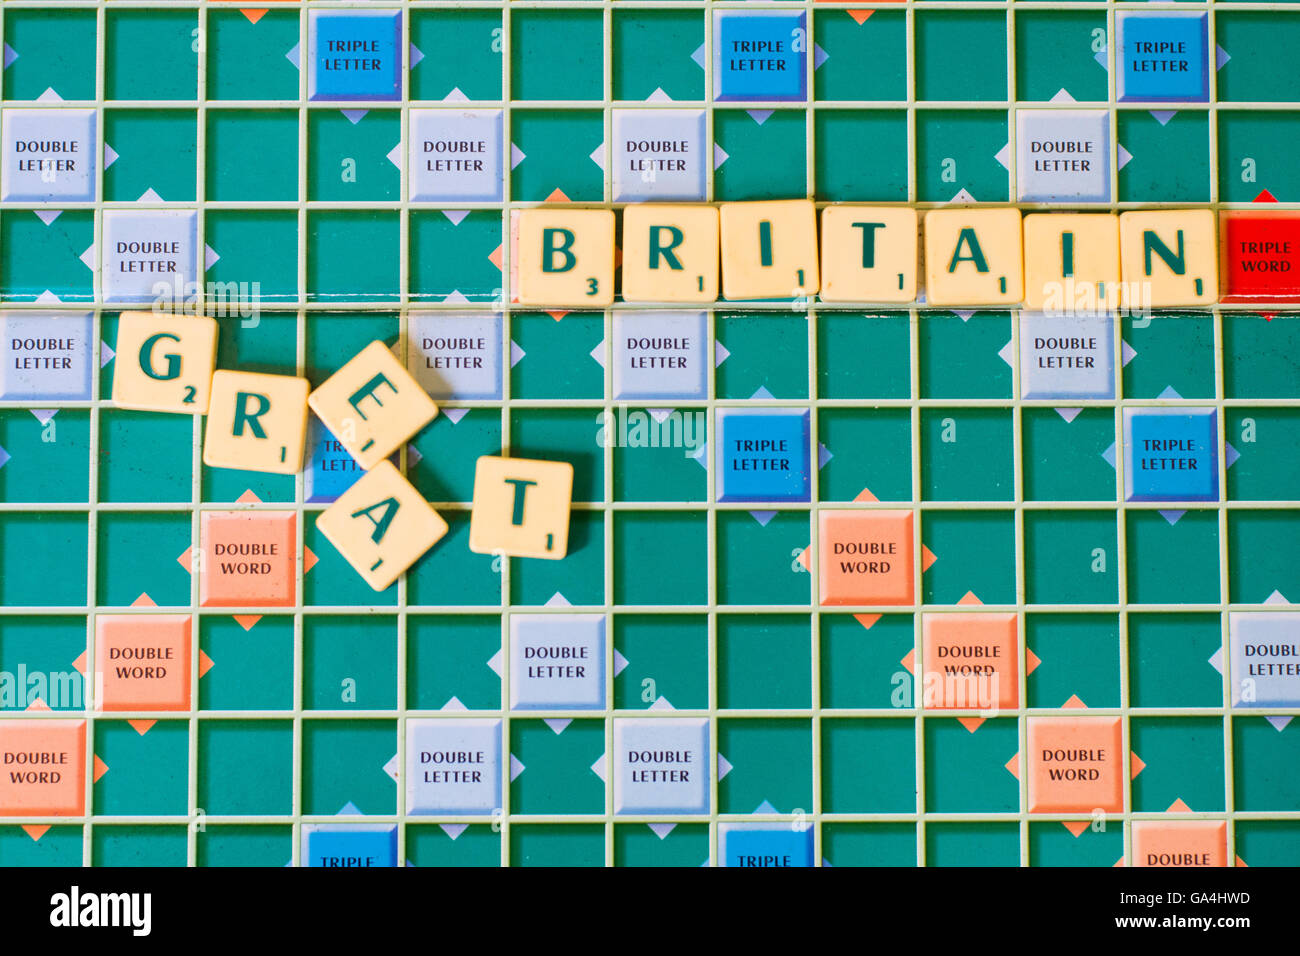 Scrabble tiles spelling out Great Britain with the Great scattered, symbolising the demise of Great Britain after - Stock Image